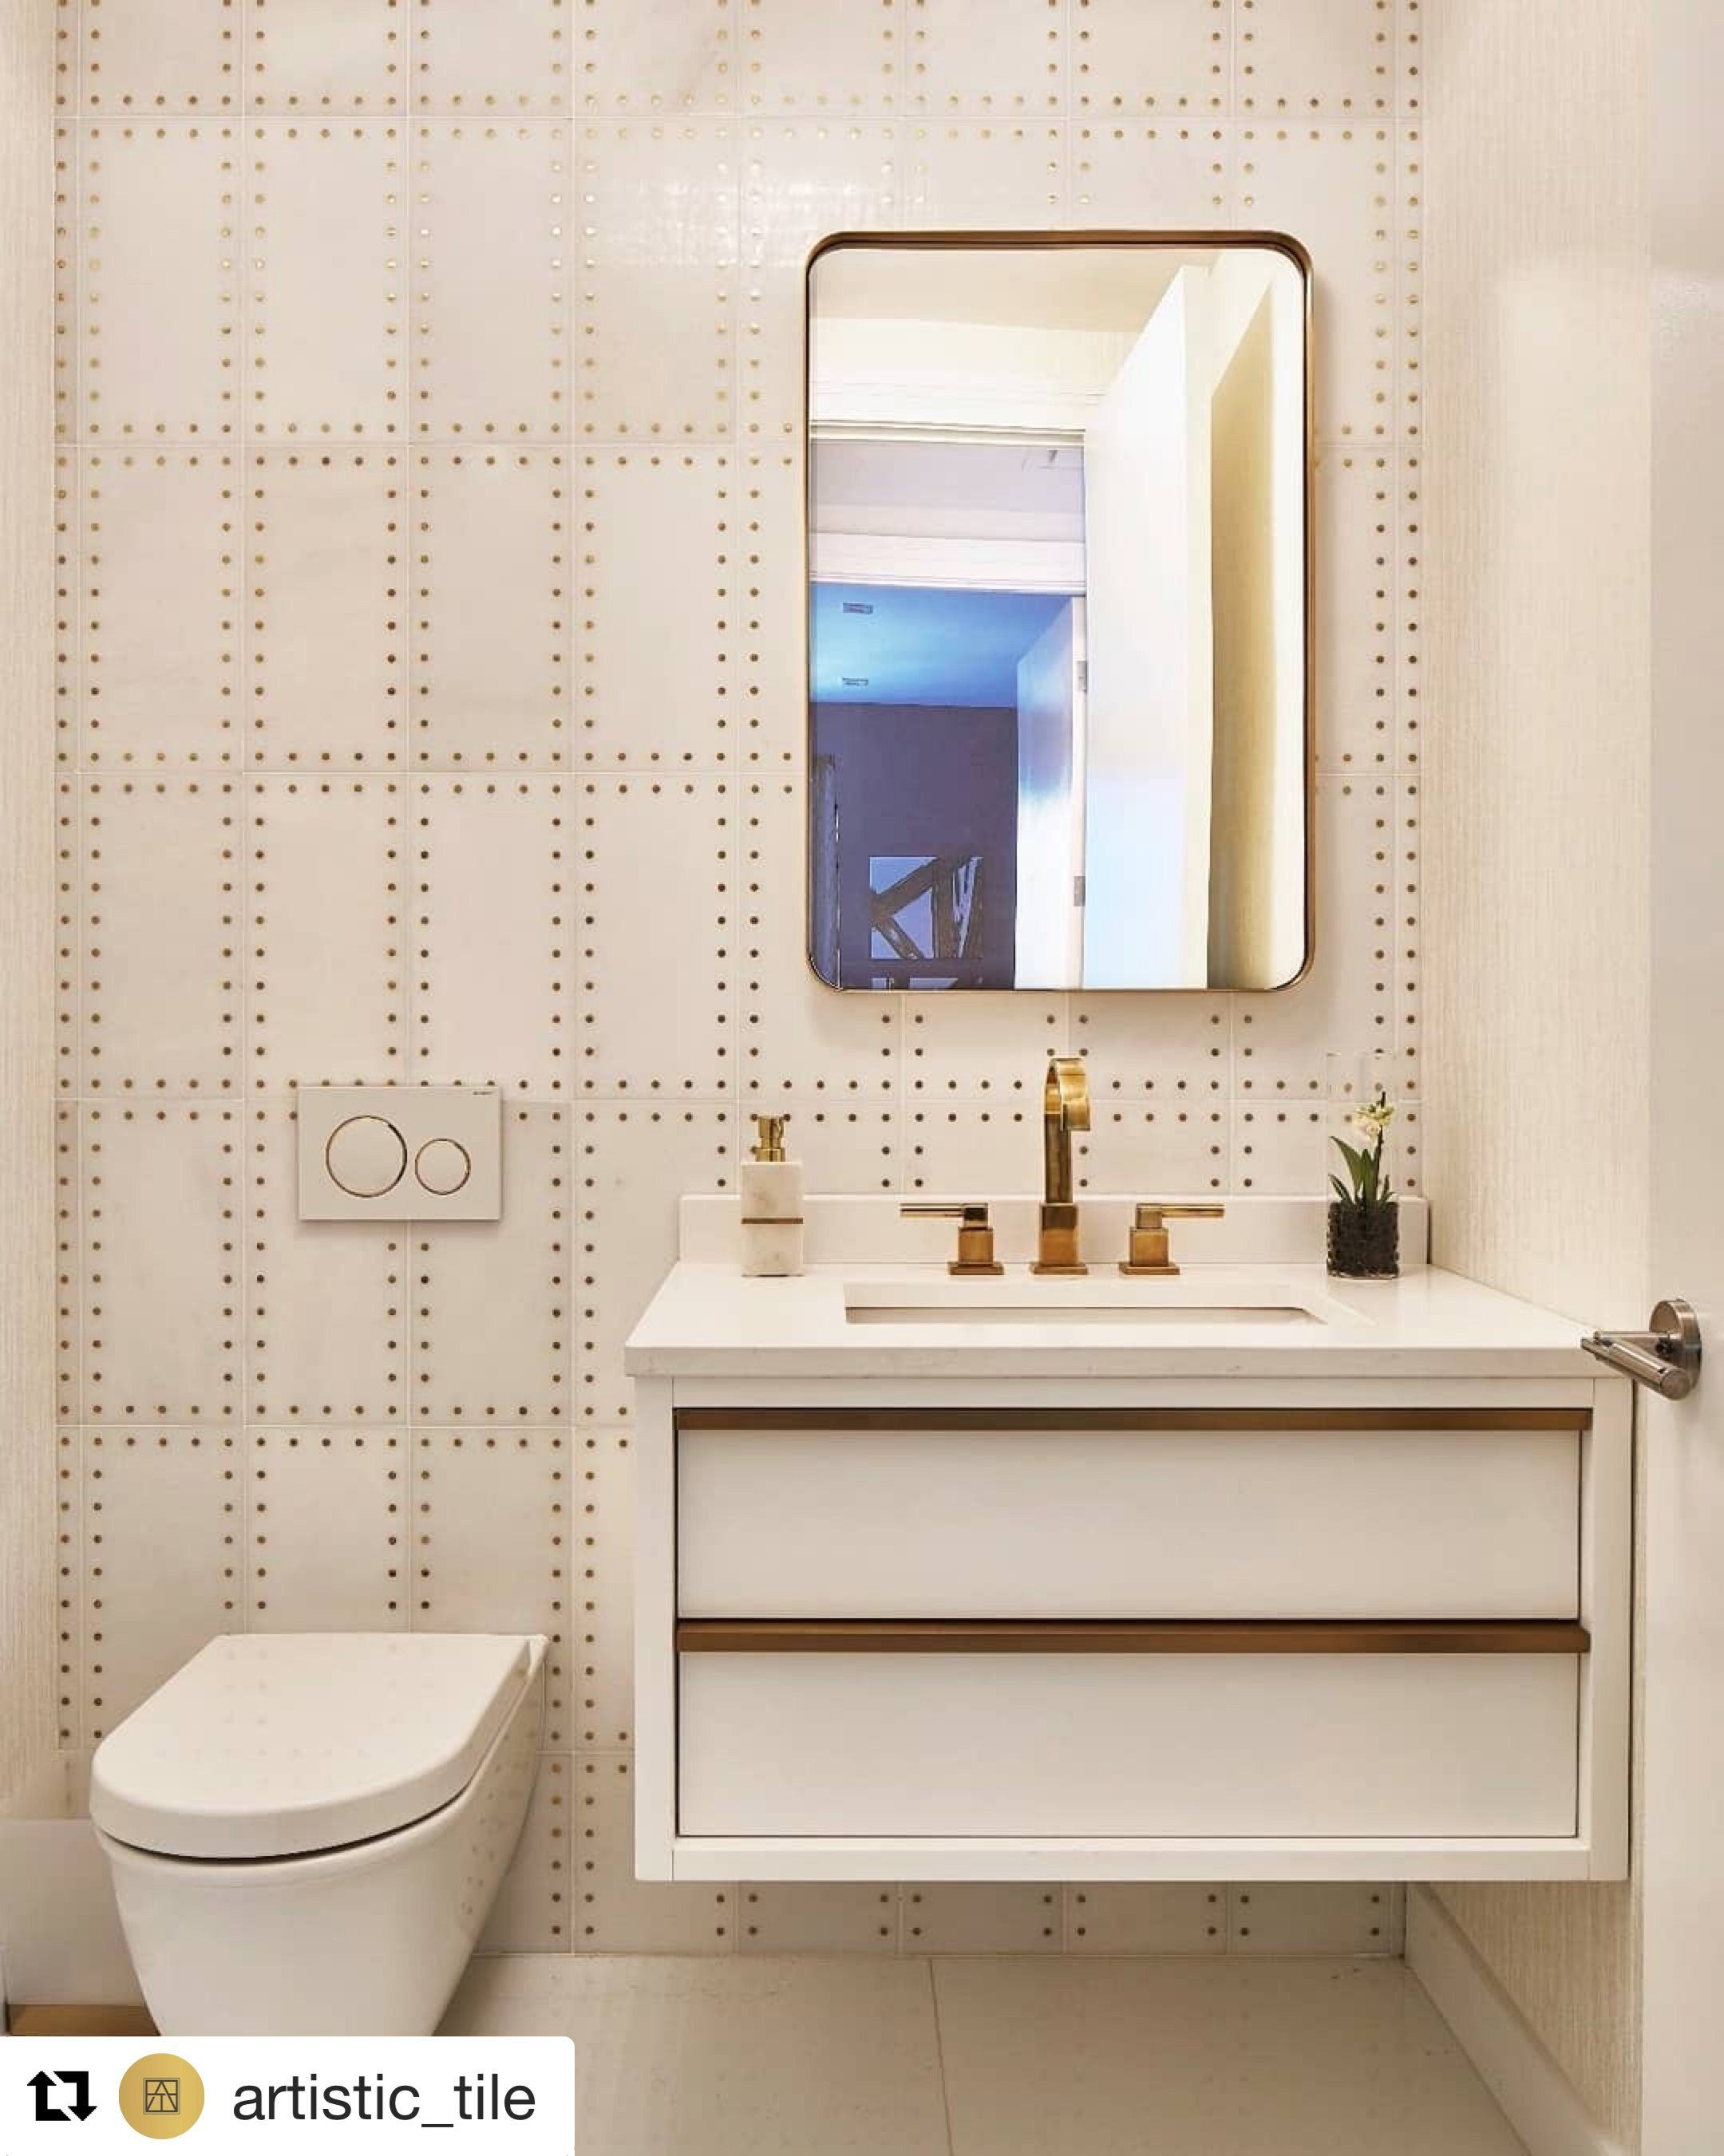 Artistic Tile Stateroom Adds Character And Style To This